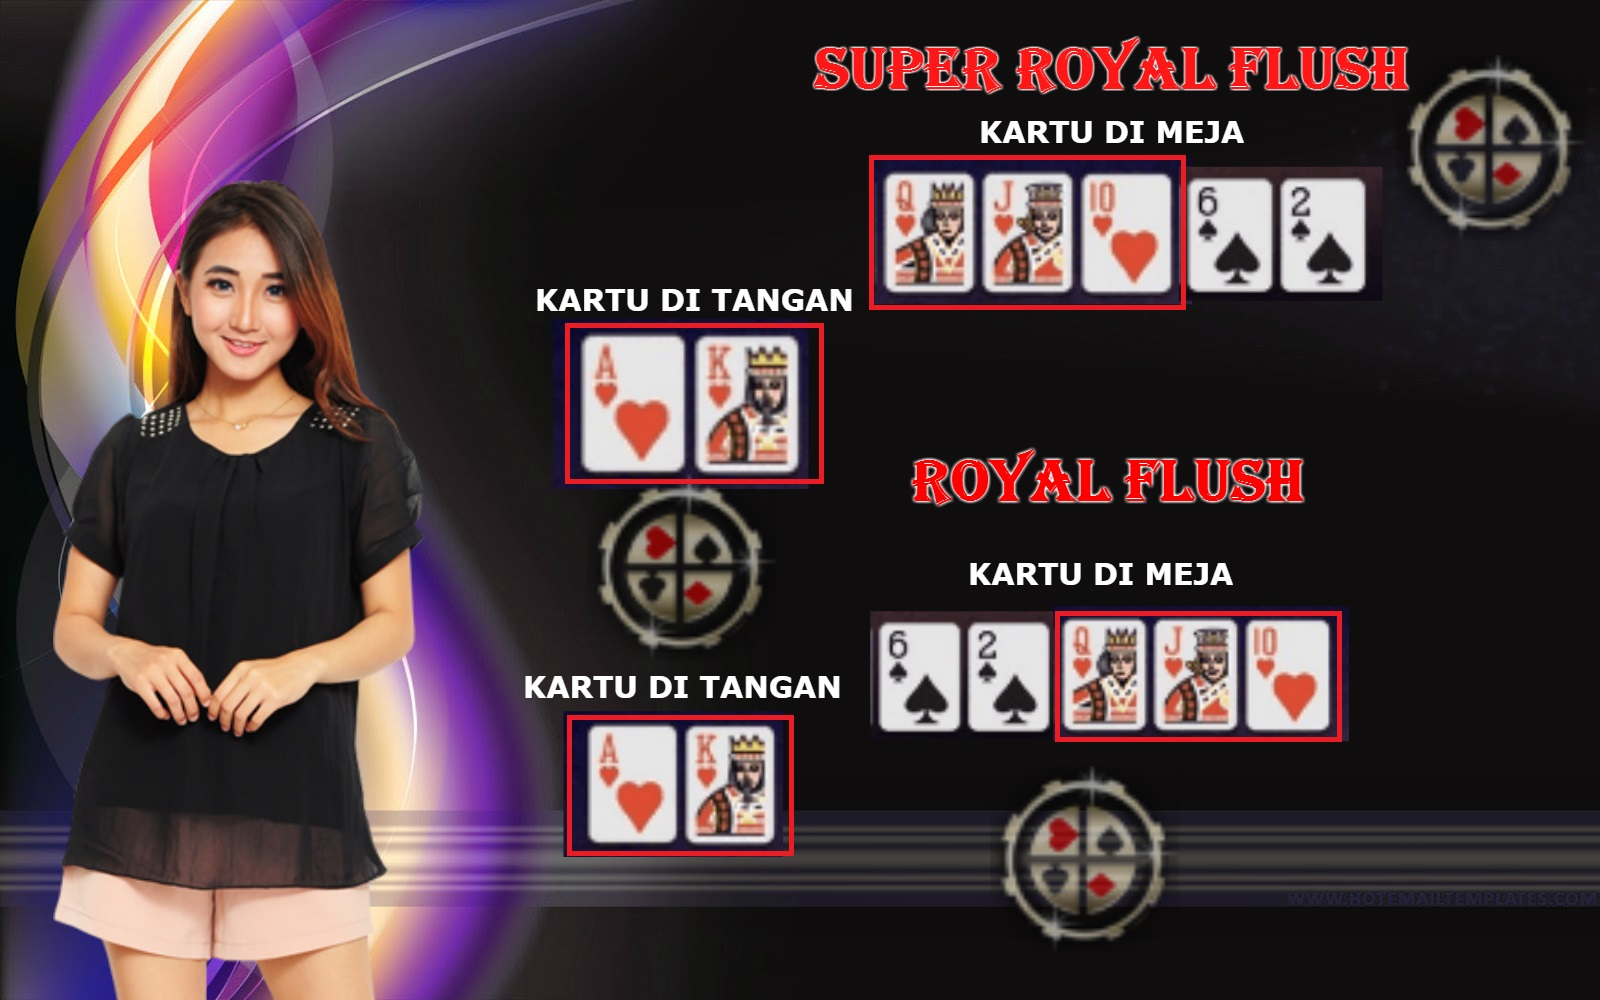 SUPER ROYAL FLUSH DAN ROYAL FLUSH DI IDN POKER UANG ASLI